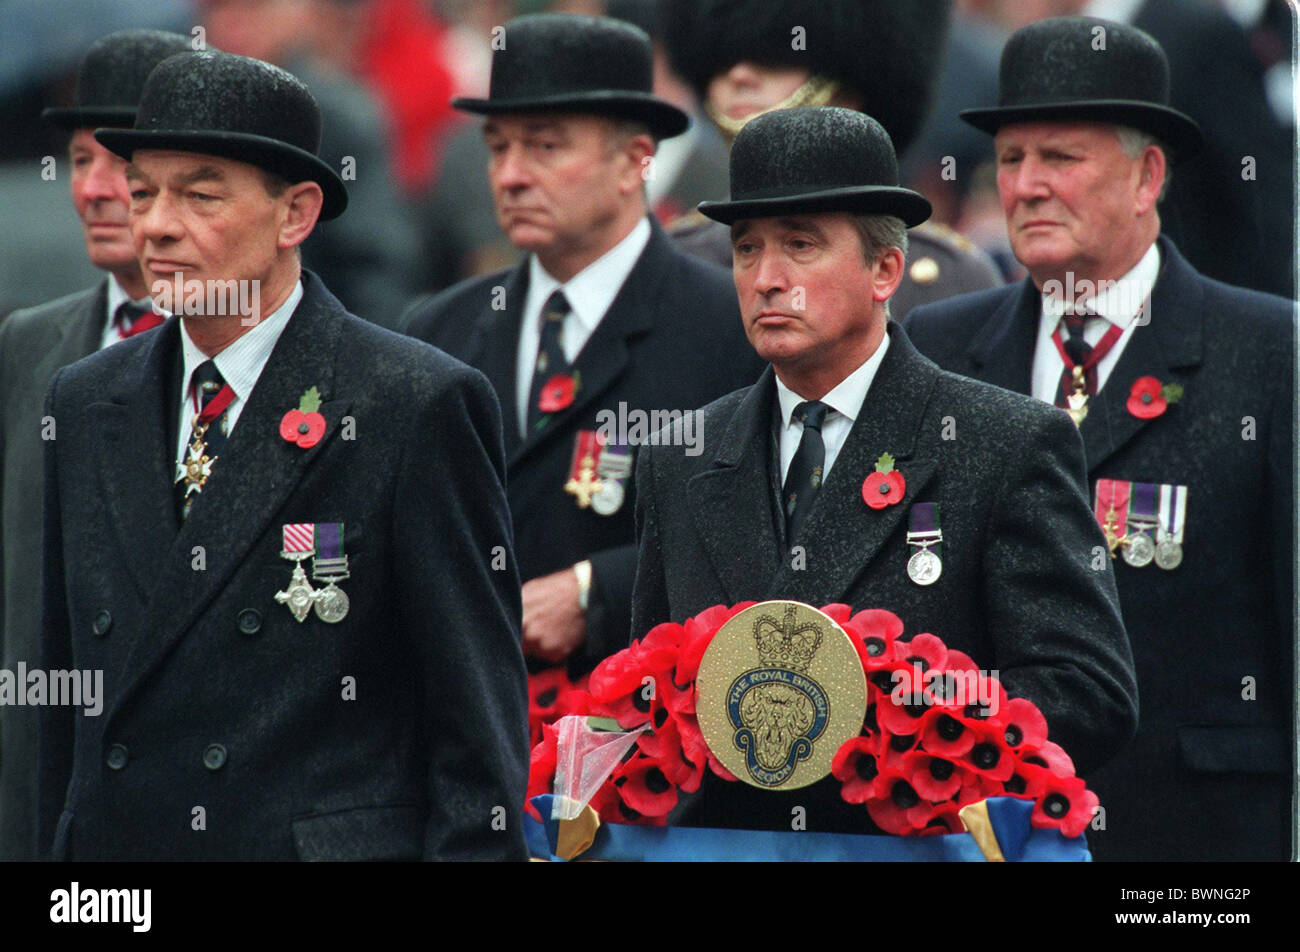 WAR VETERANS IN THE PARADE ON REMEMBRANCE DAY AT THE CENOTAPH IN LONDON - Stock Image